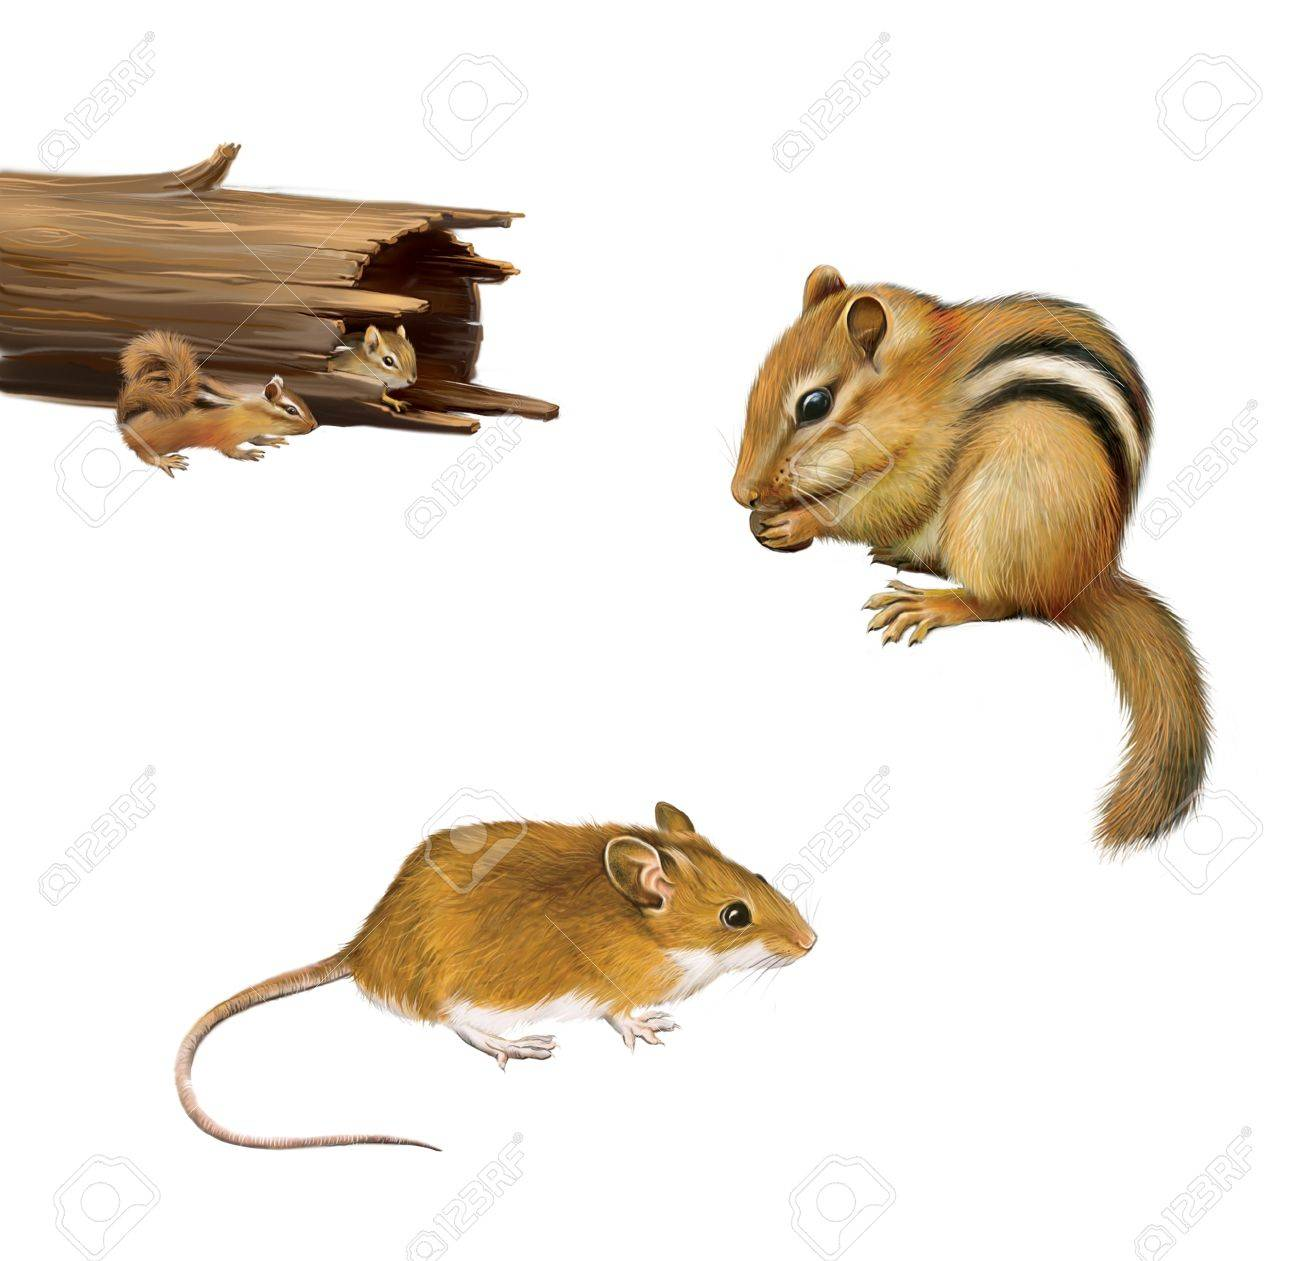 Rodents  chipmunk eating a nut, yellow brown mouse, two chipmunks in a fallen log, Isolated on white background Stock Photo - 19340744